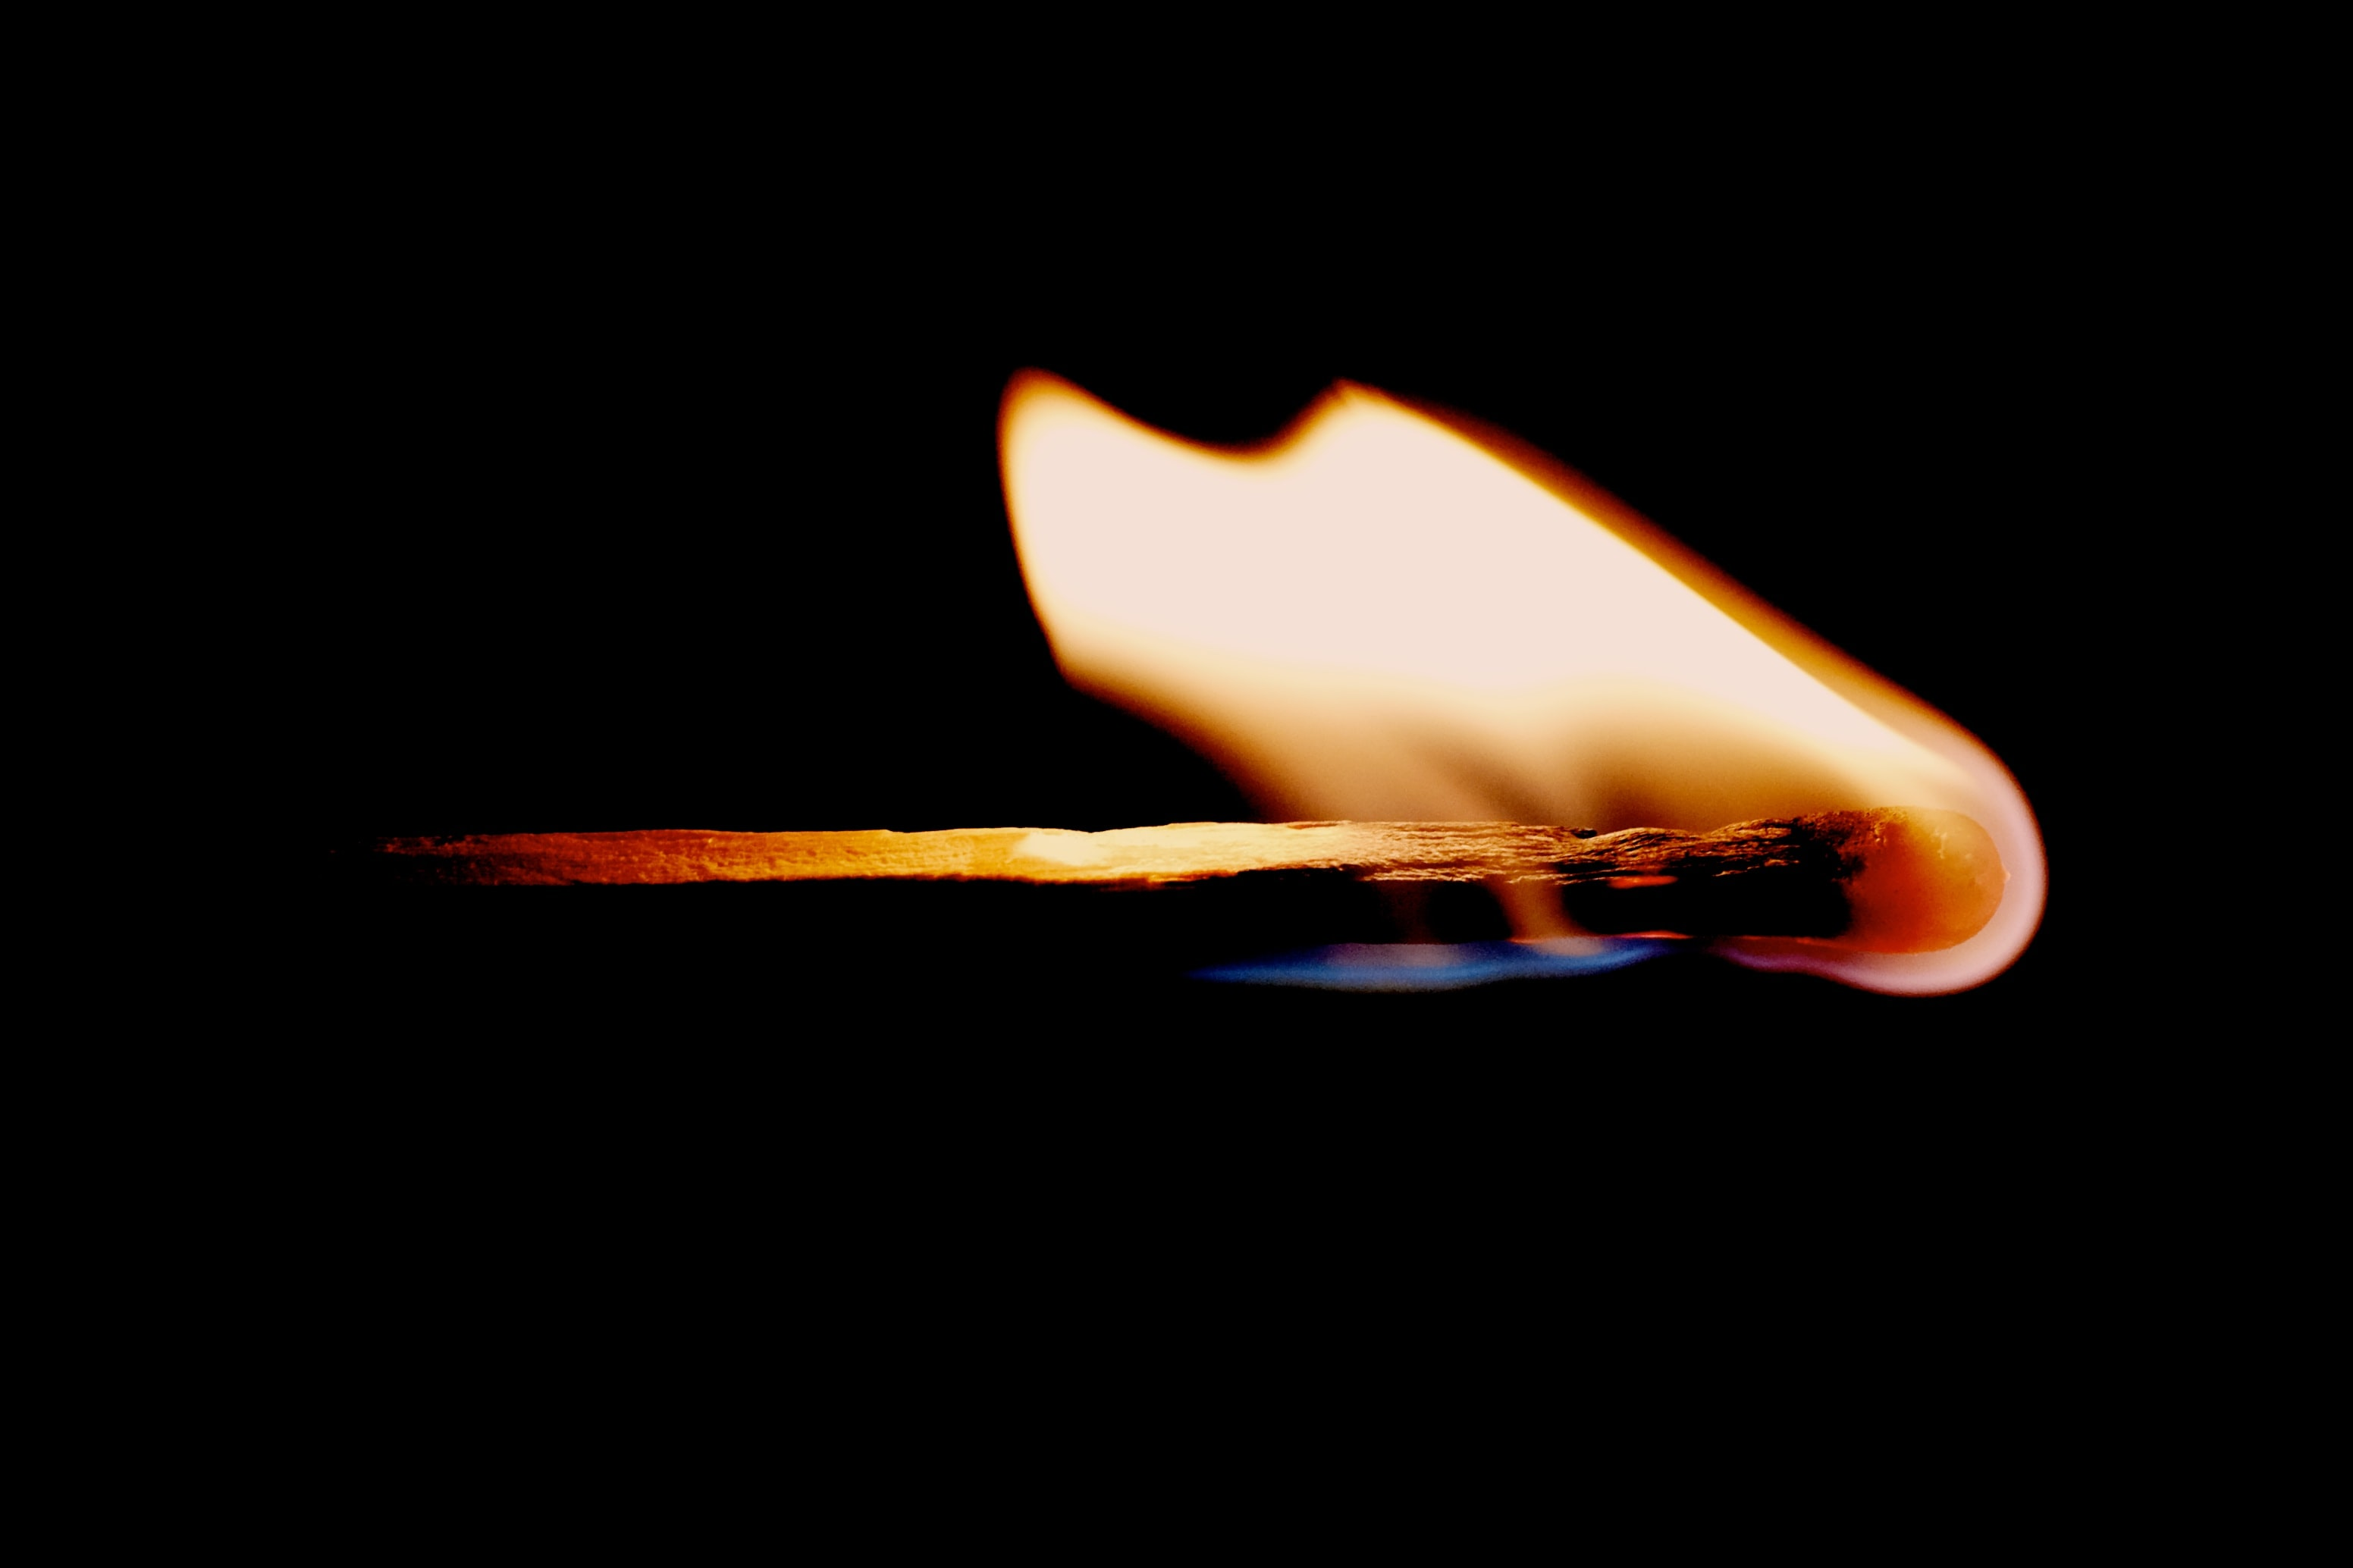 Close-up of a match on fire